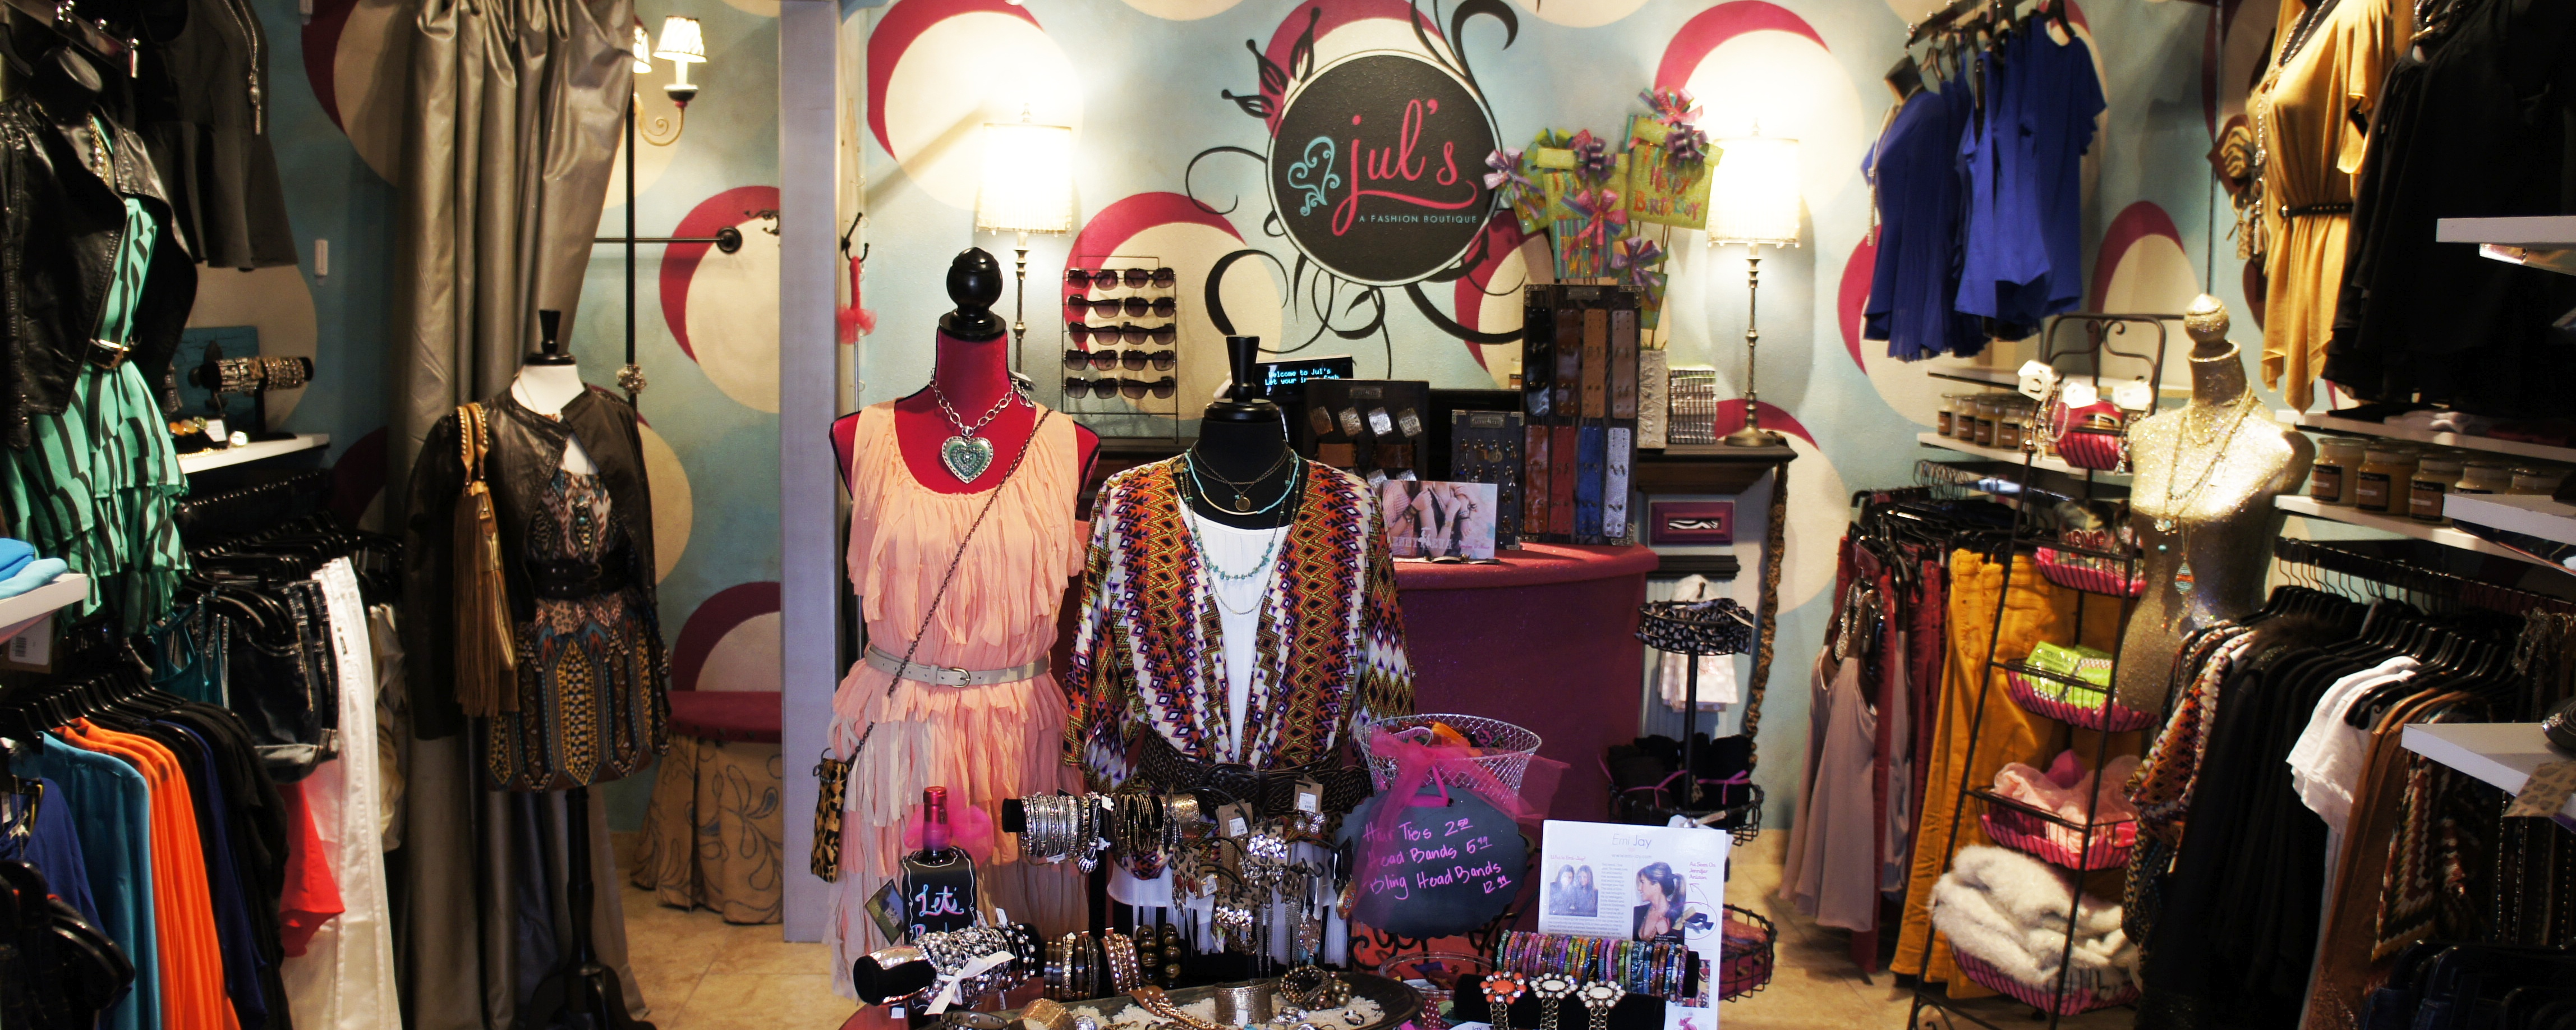 Shoptiques Boutique: Jul's Fashion Boutique